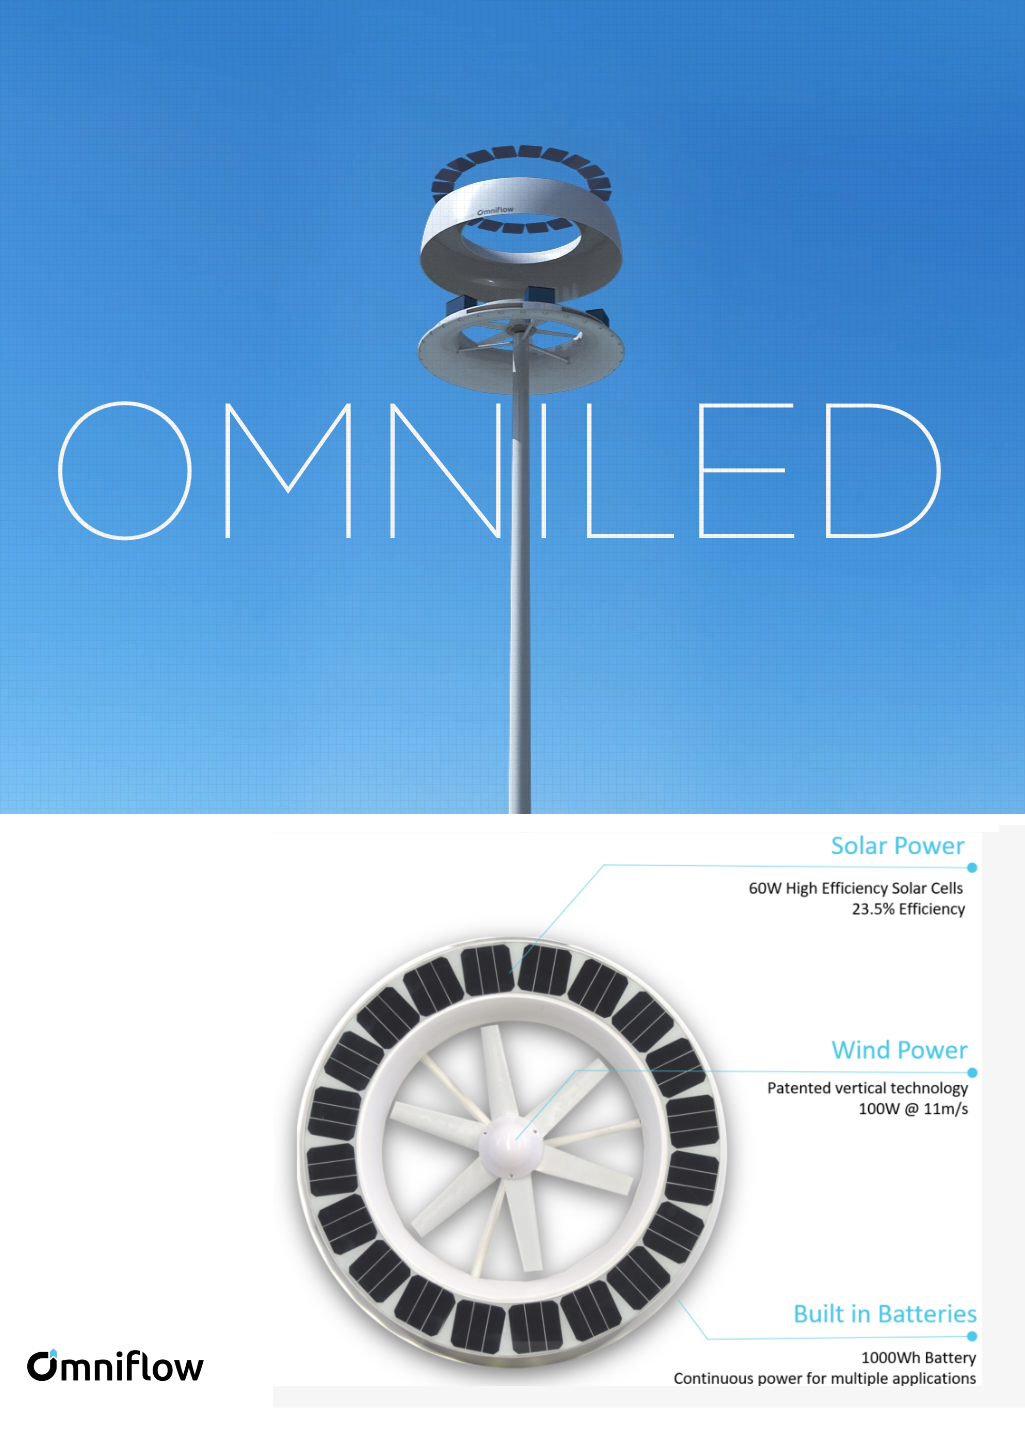 Gallery Omniled 2